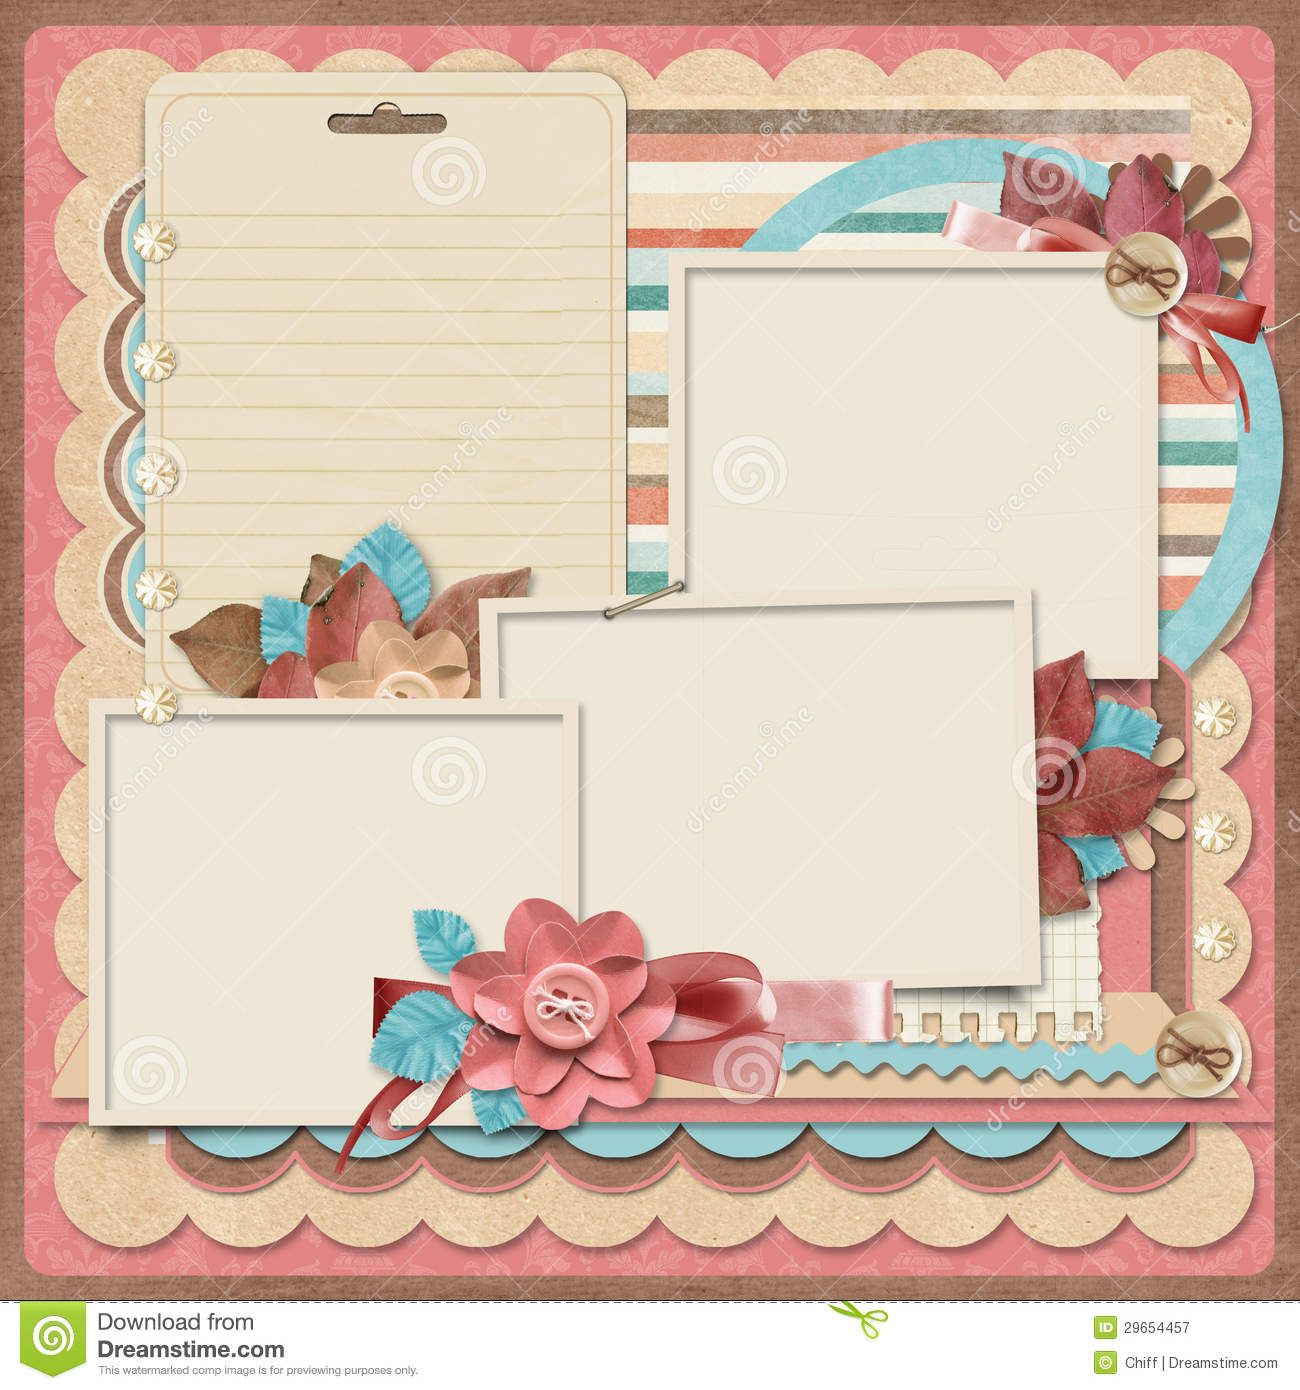 Retro family project scrapbooking templates - Scrapbook background free printables ...